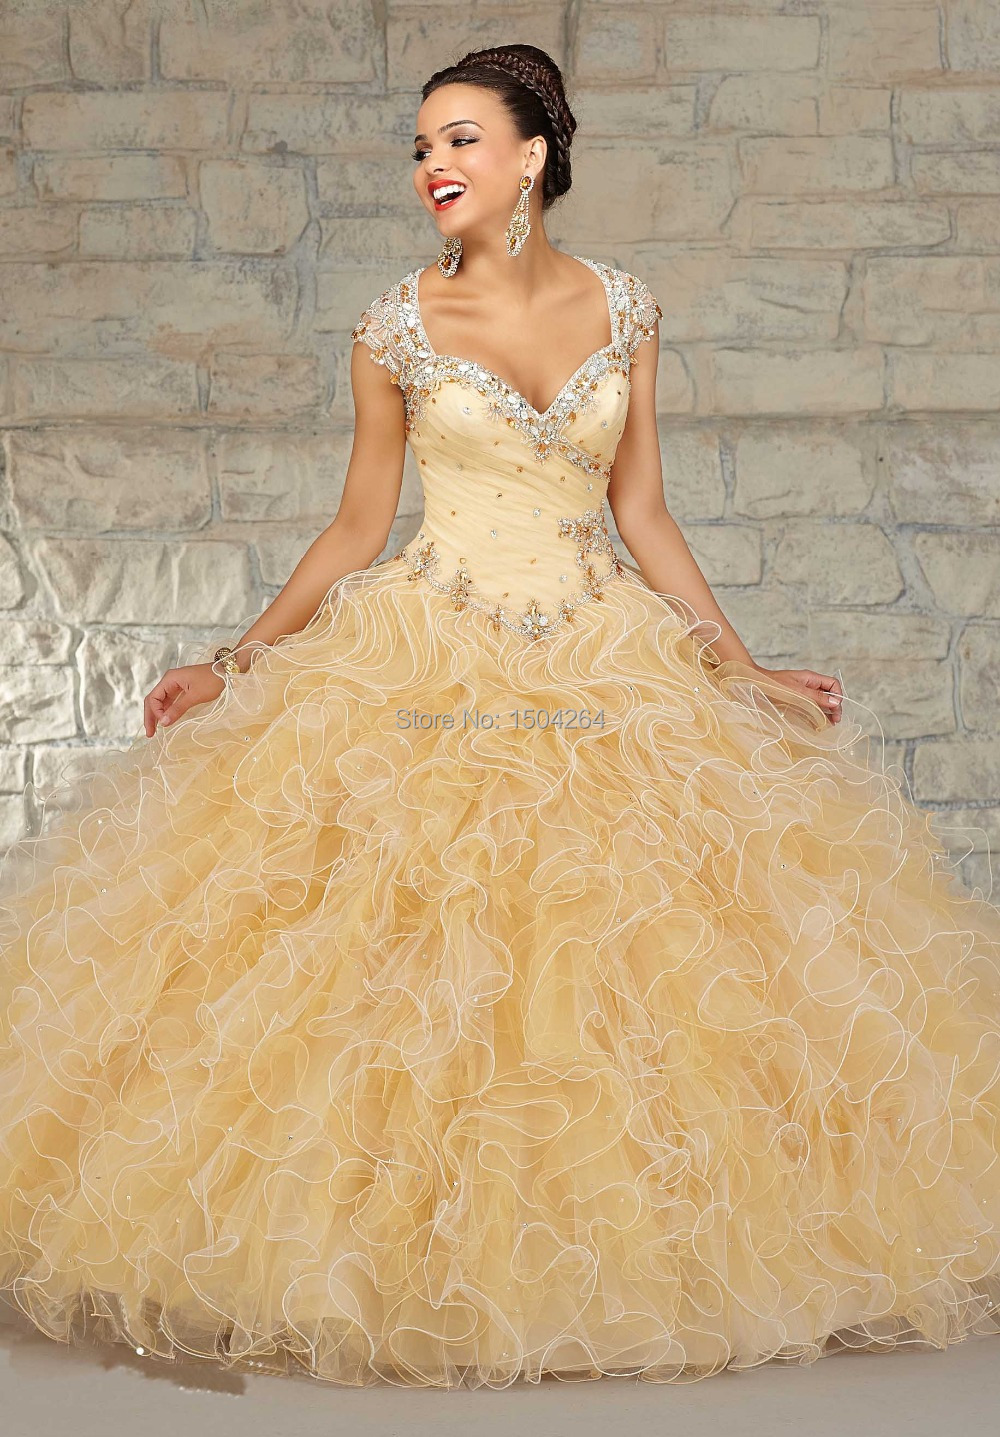 Aliexpress.com : Buy 2015 Hot trend yellow quinceanera dresses ...